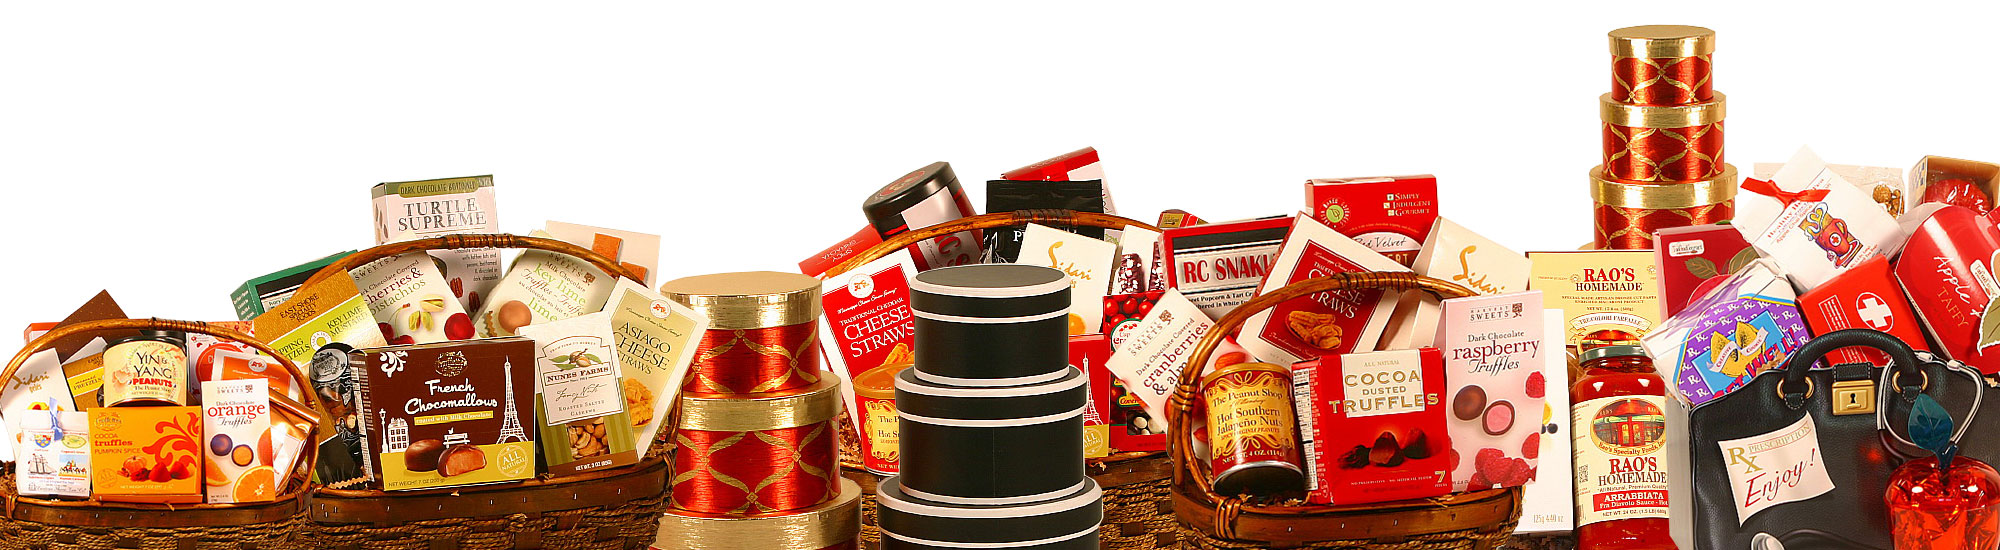 Buy Custom Gift Baskets | Astoria, NY - 24/7 Gift Ideas - The Gifted Ones